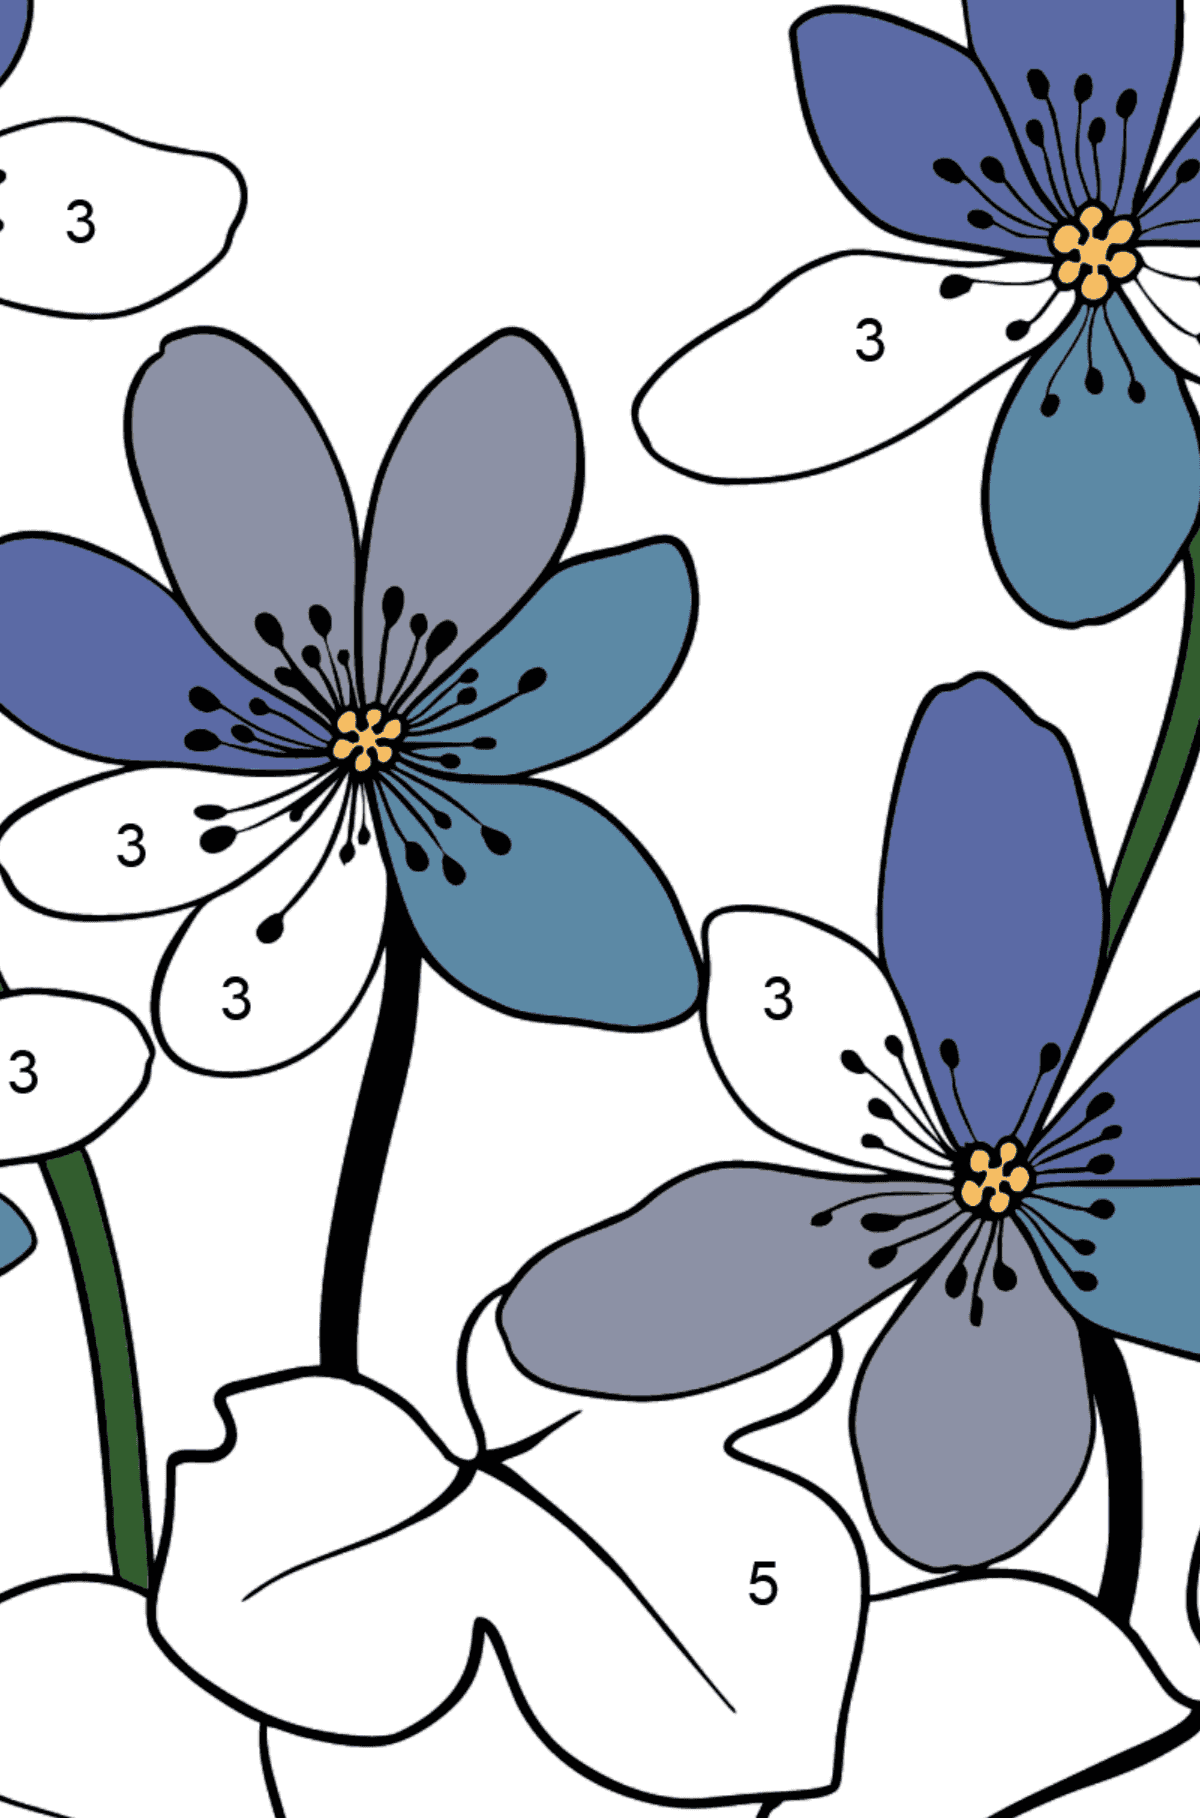 Flower Coloring Page - A Hepatica with Blue Petals - Coloring by Numbers for Kids